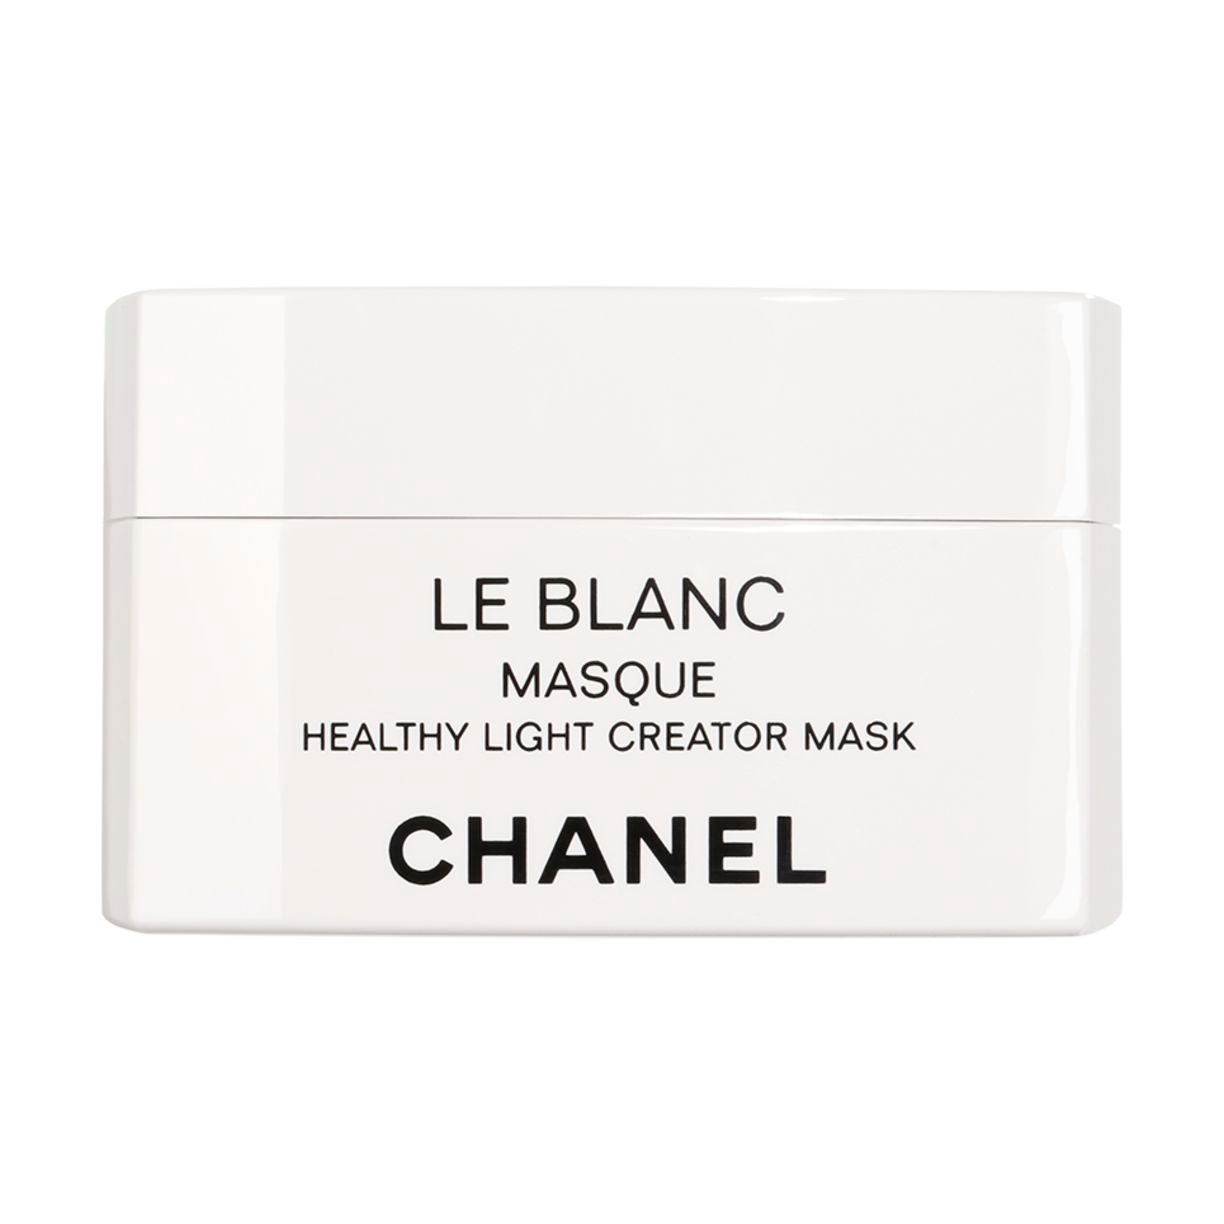 LE BLANC MASQUE HEALTHY LIGHT CREATOR MASK REVITALIZING - BRIGHTENING - NOURISHING